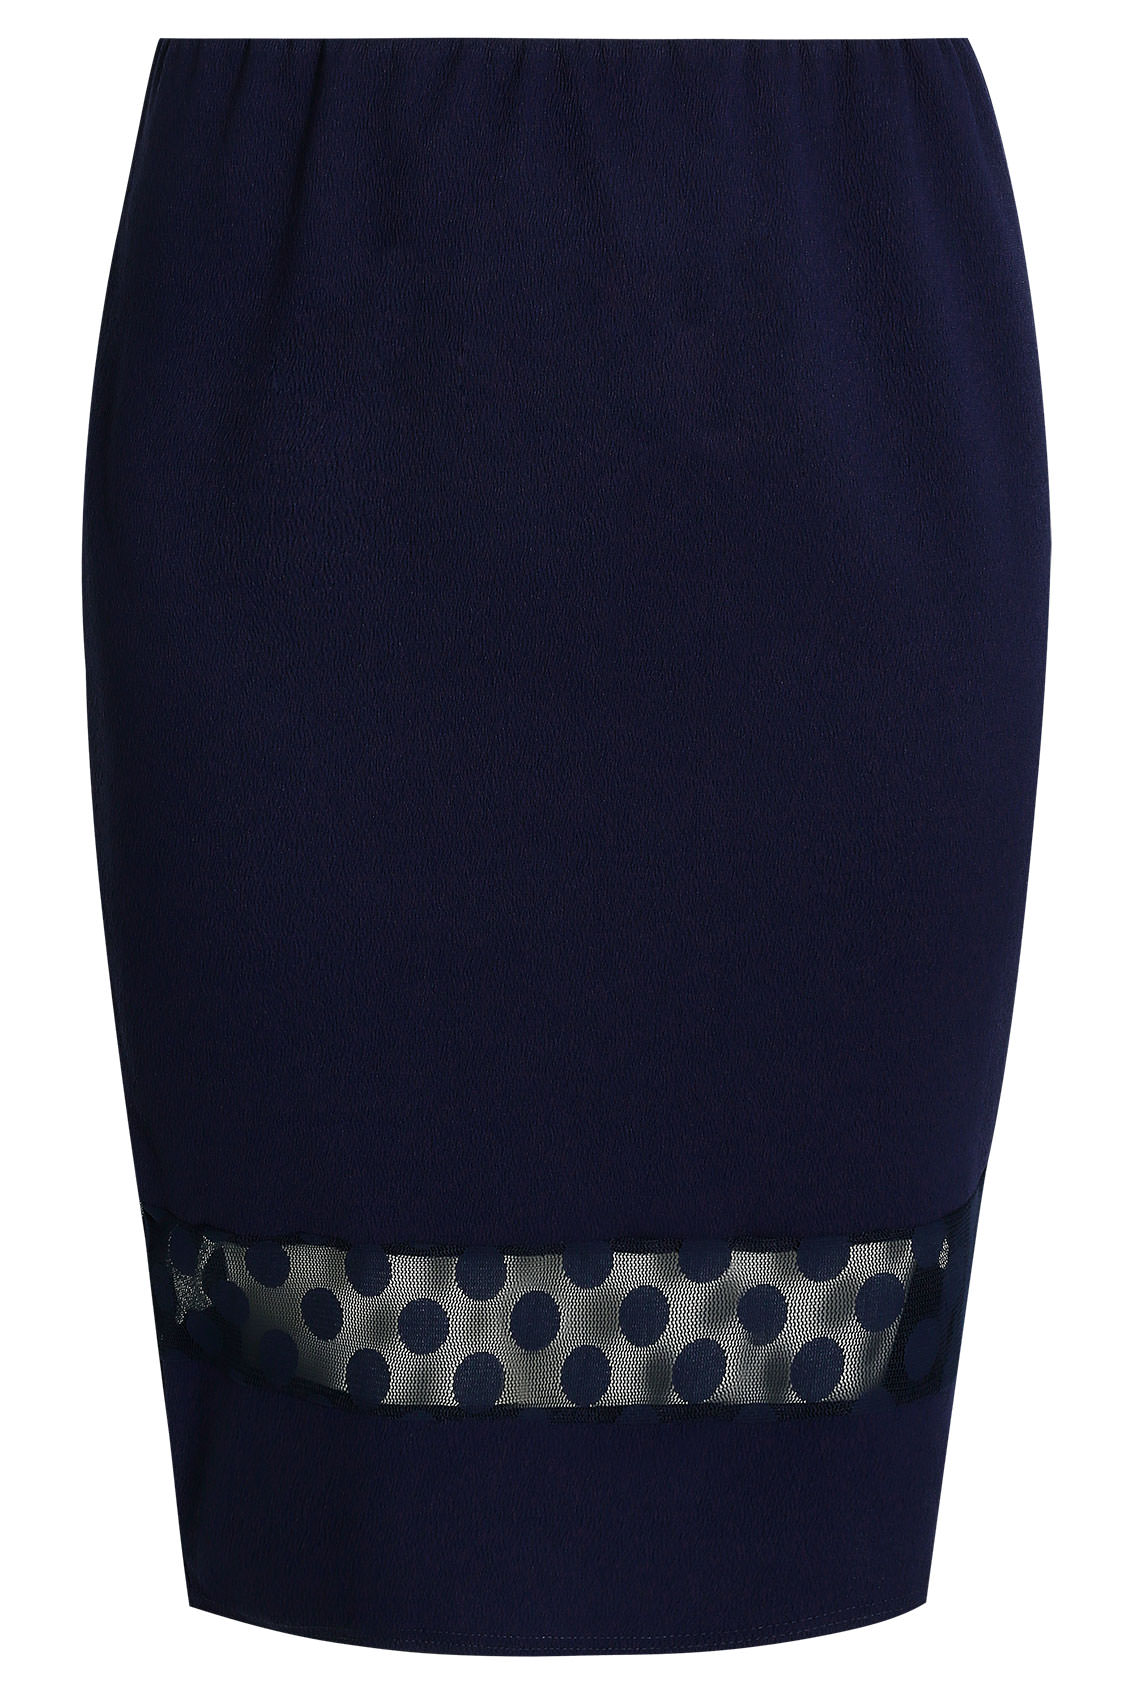 navy liverpool pencil skirt with polka dot mesh insert